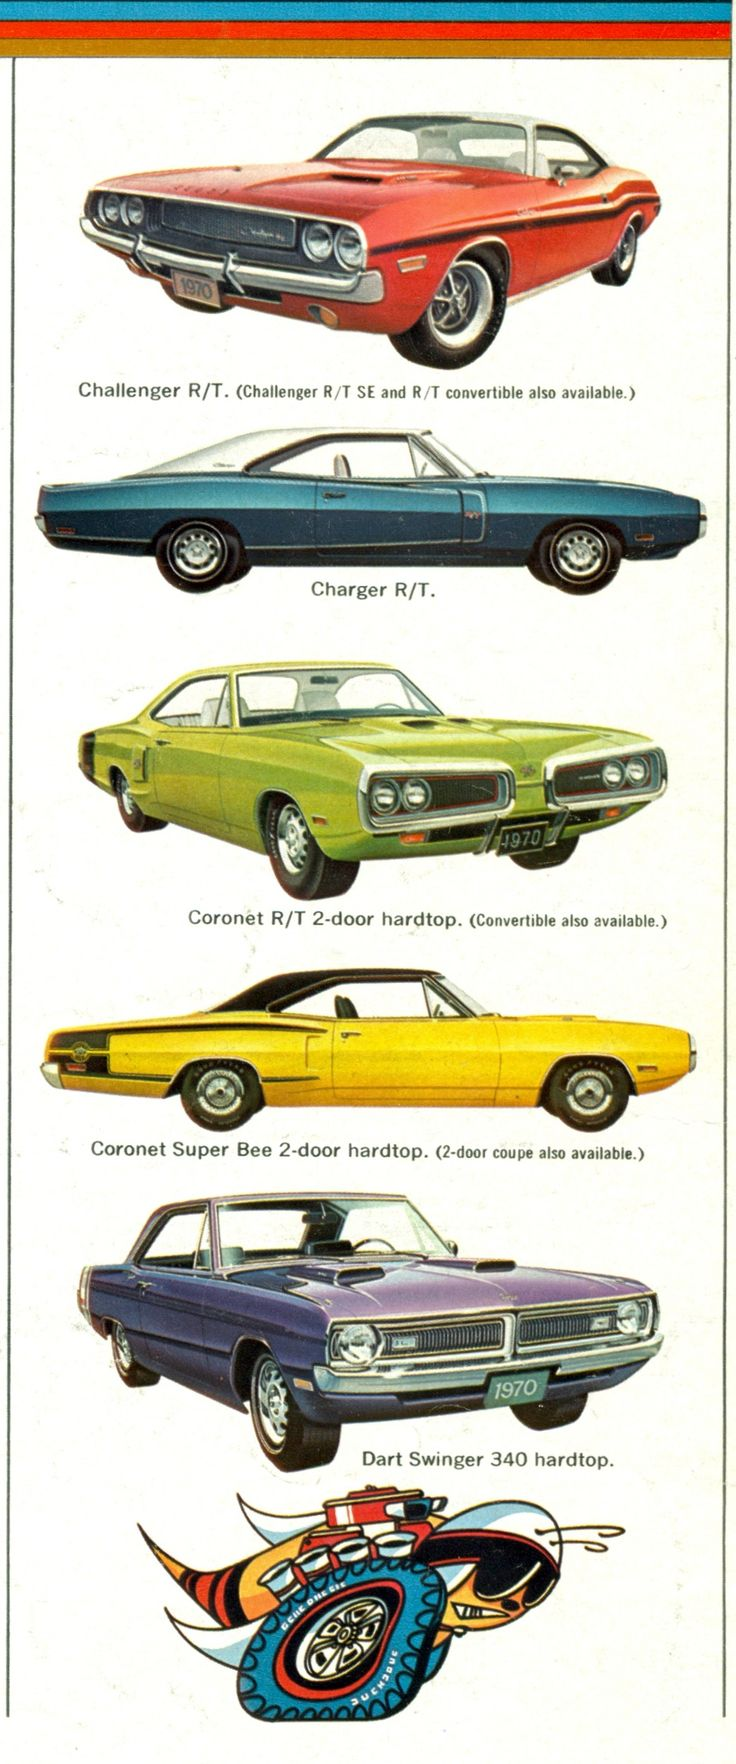 1970 Dodge Muscle Cars.